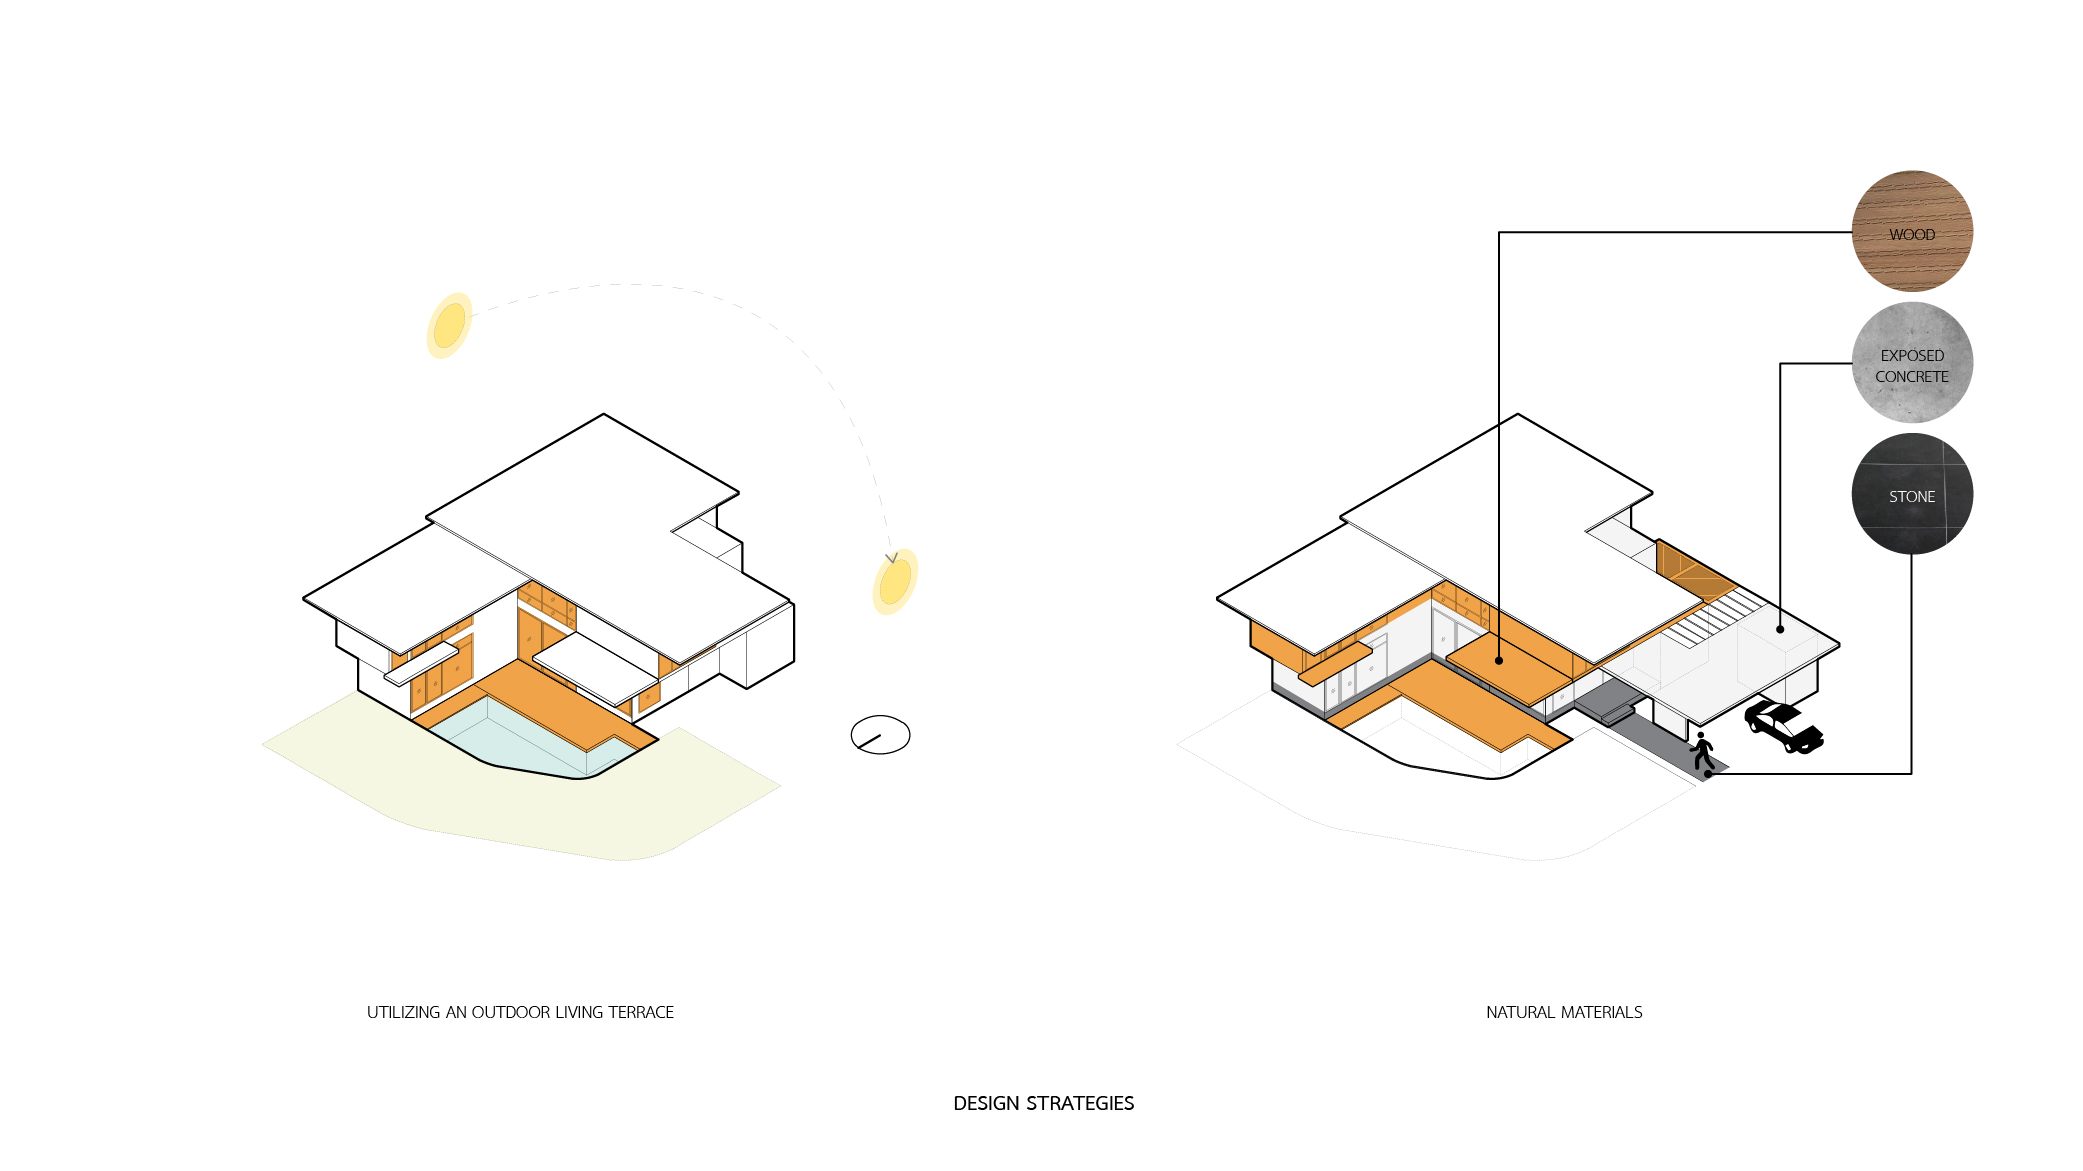 lighting architecture diagram ford focus stereo wiring 2006 bangbuathong house chaan a d graphic design 03 jpg